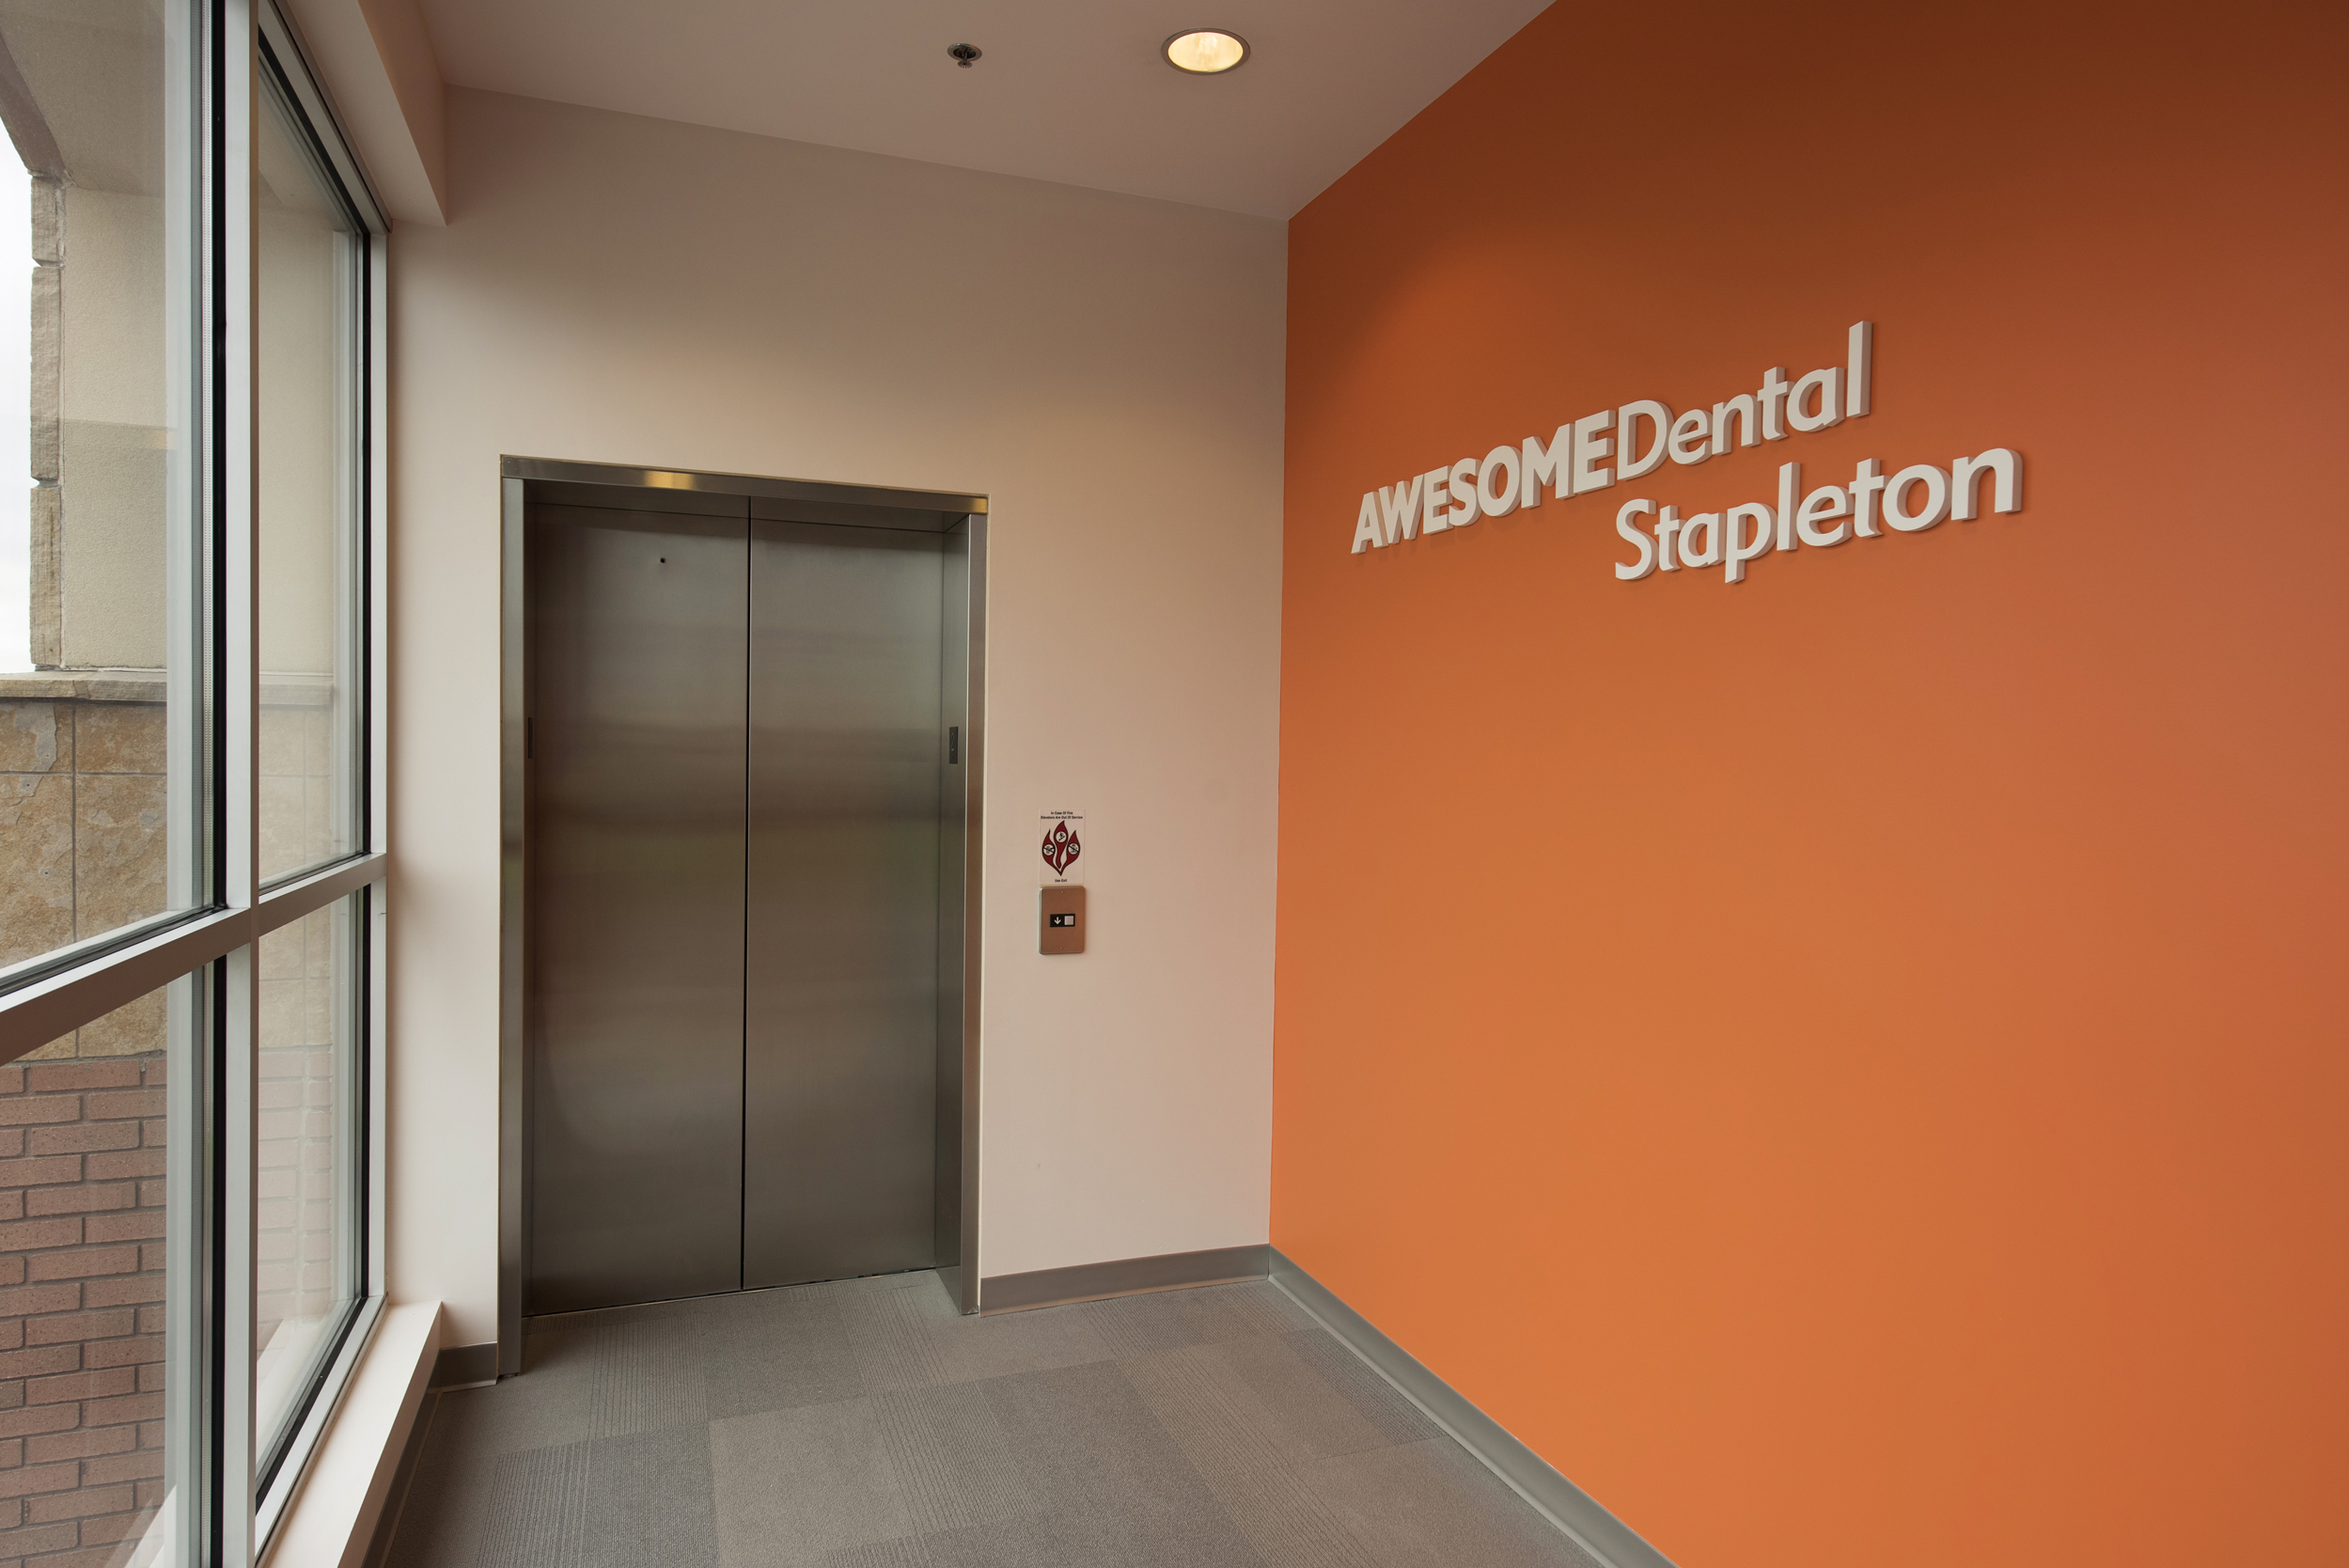 Awesome Dental Stapleton Construction Project